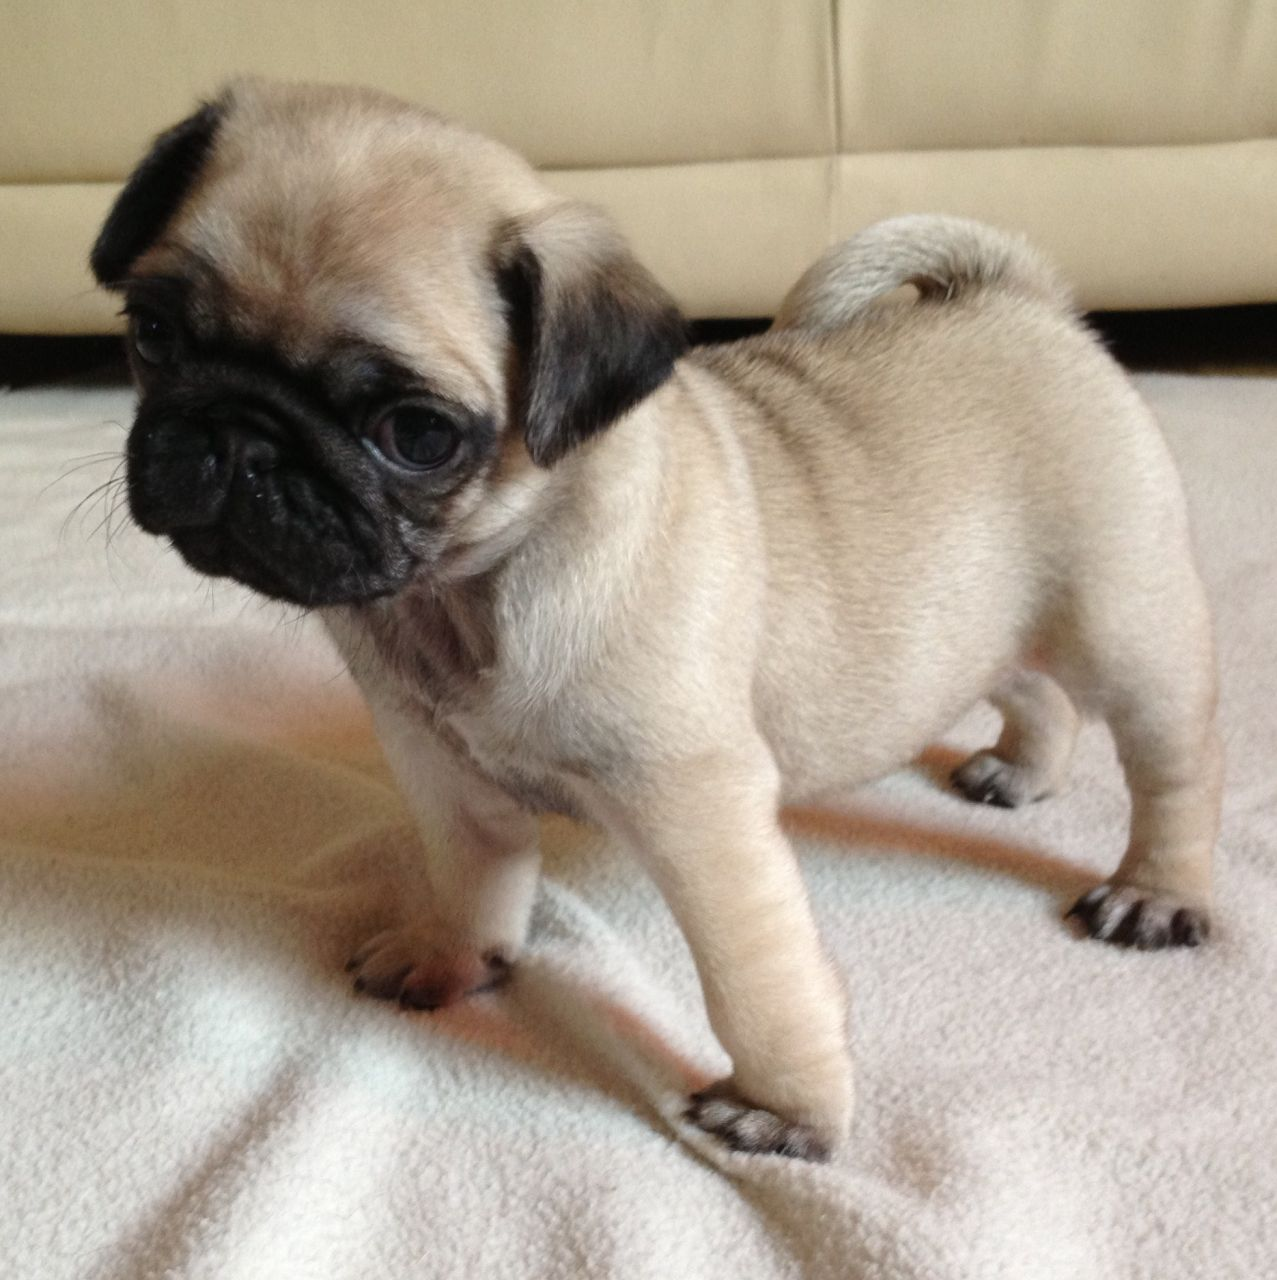 47 Very Cute Pug Puppy Pictures And Photos